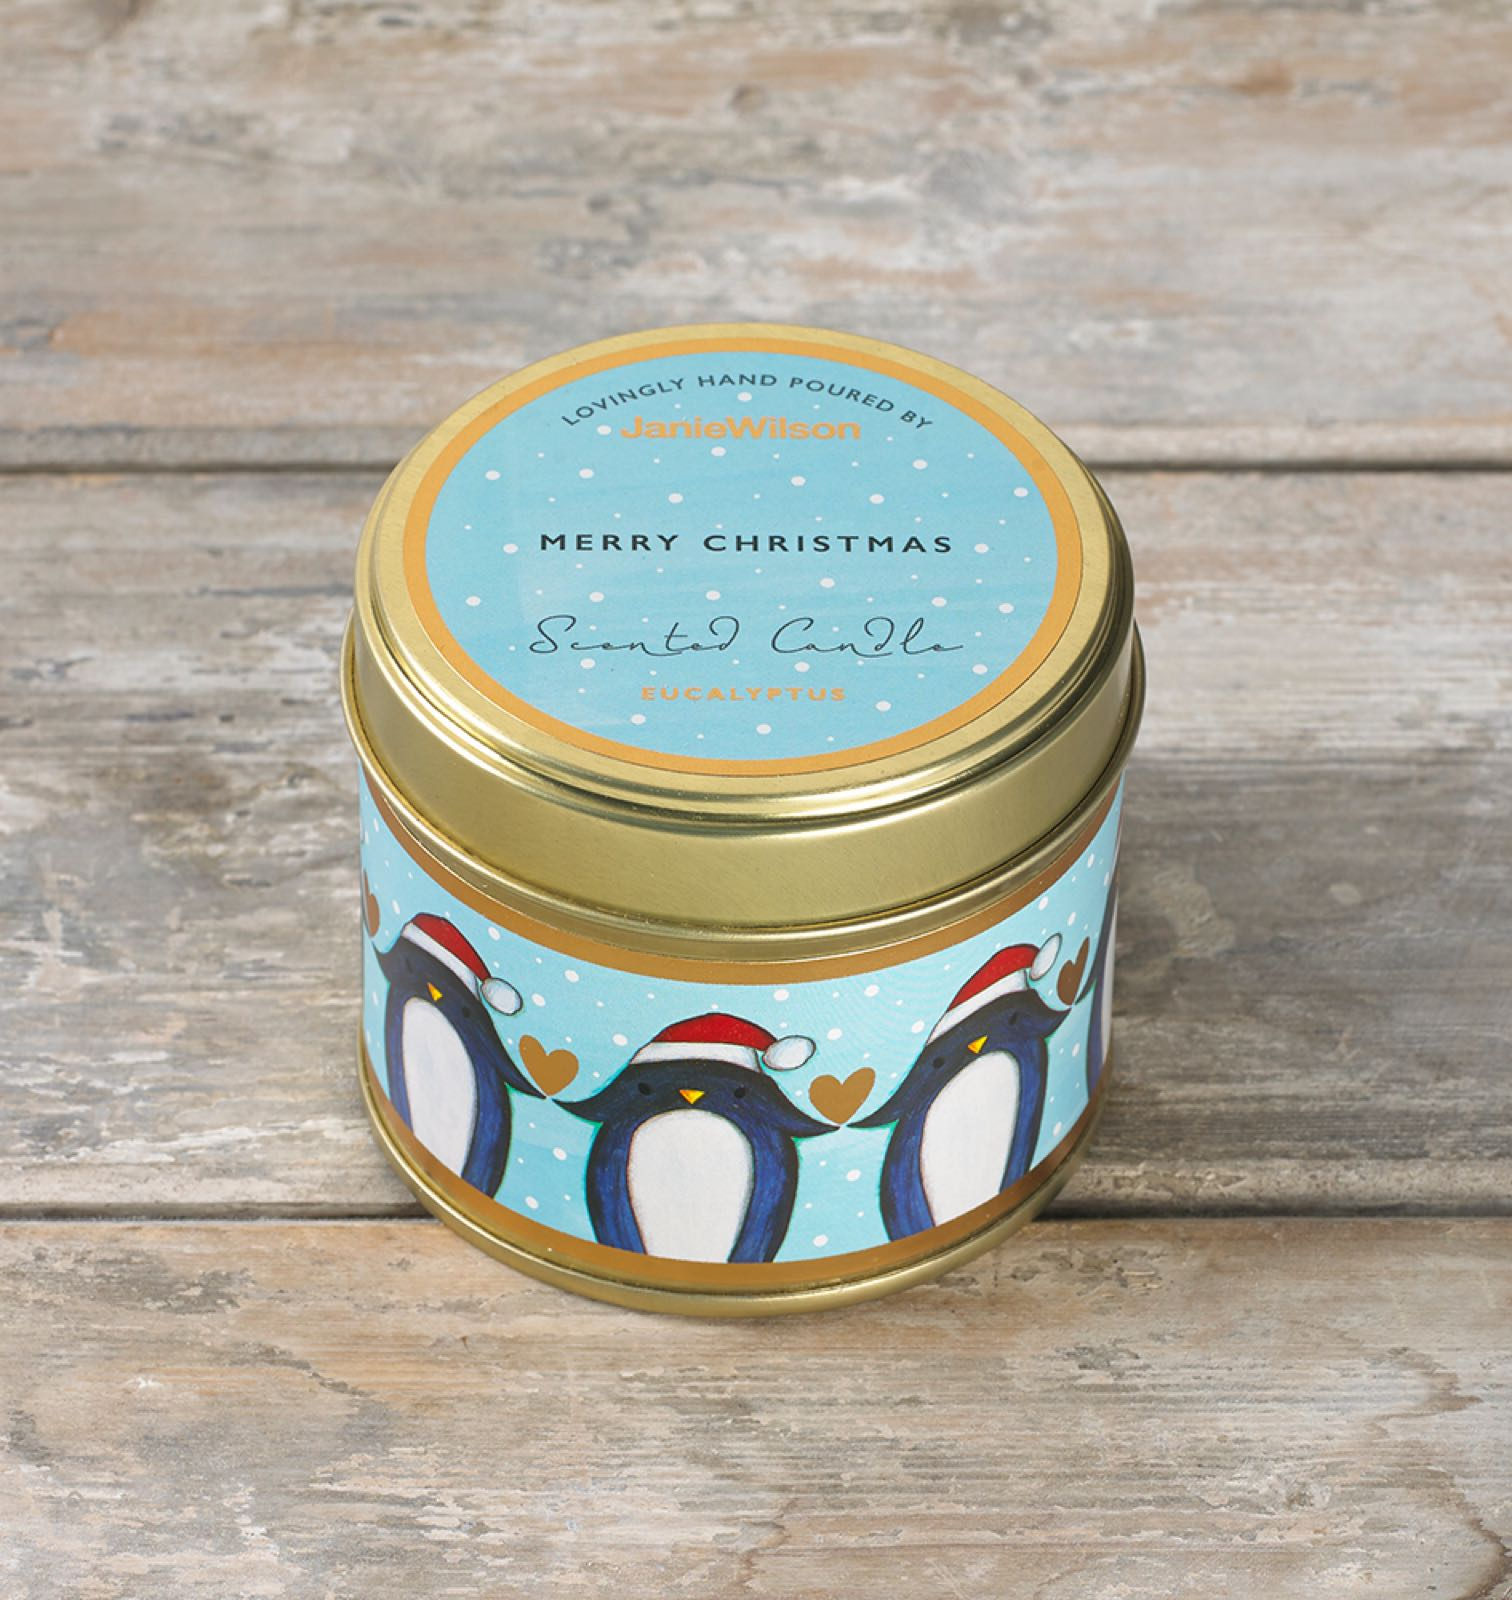 Janie wilson Merry Christmas fragranced eucalyptus large tinned candle  (matching card available )